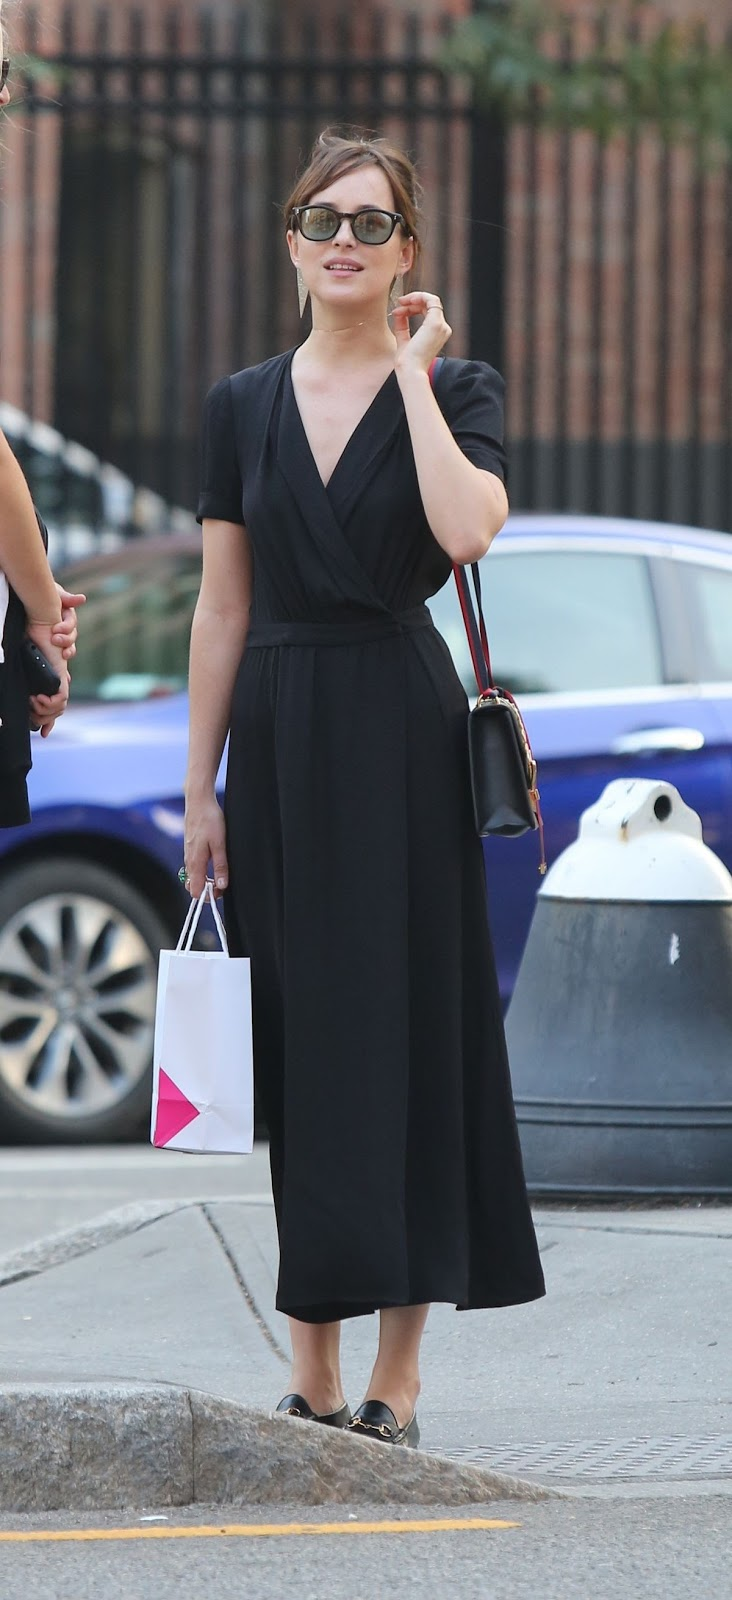 HQ Photos of Dakota Johnson Out Shopping In New York